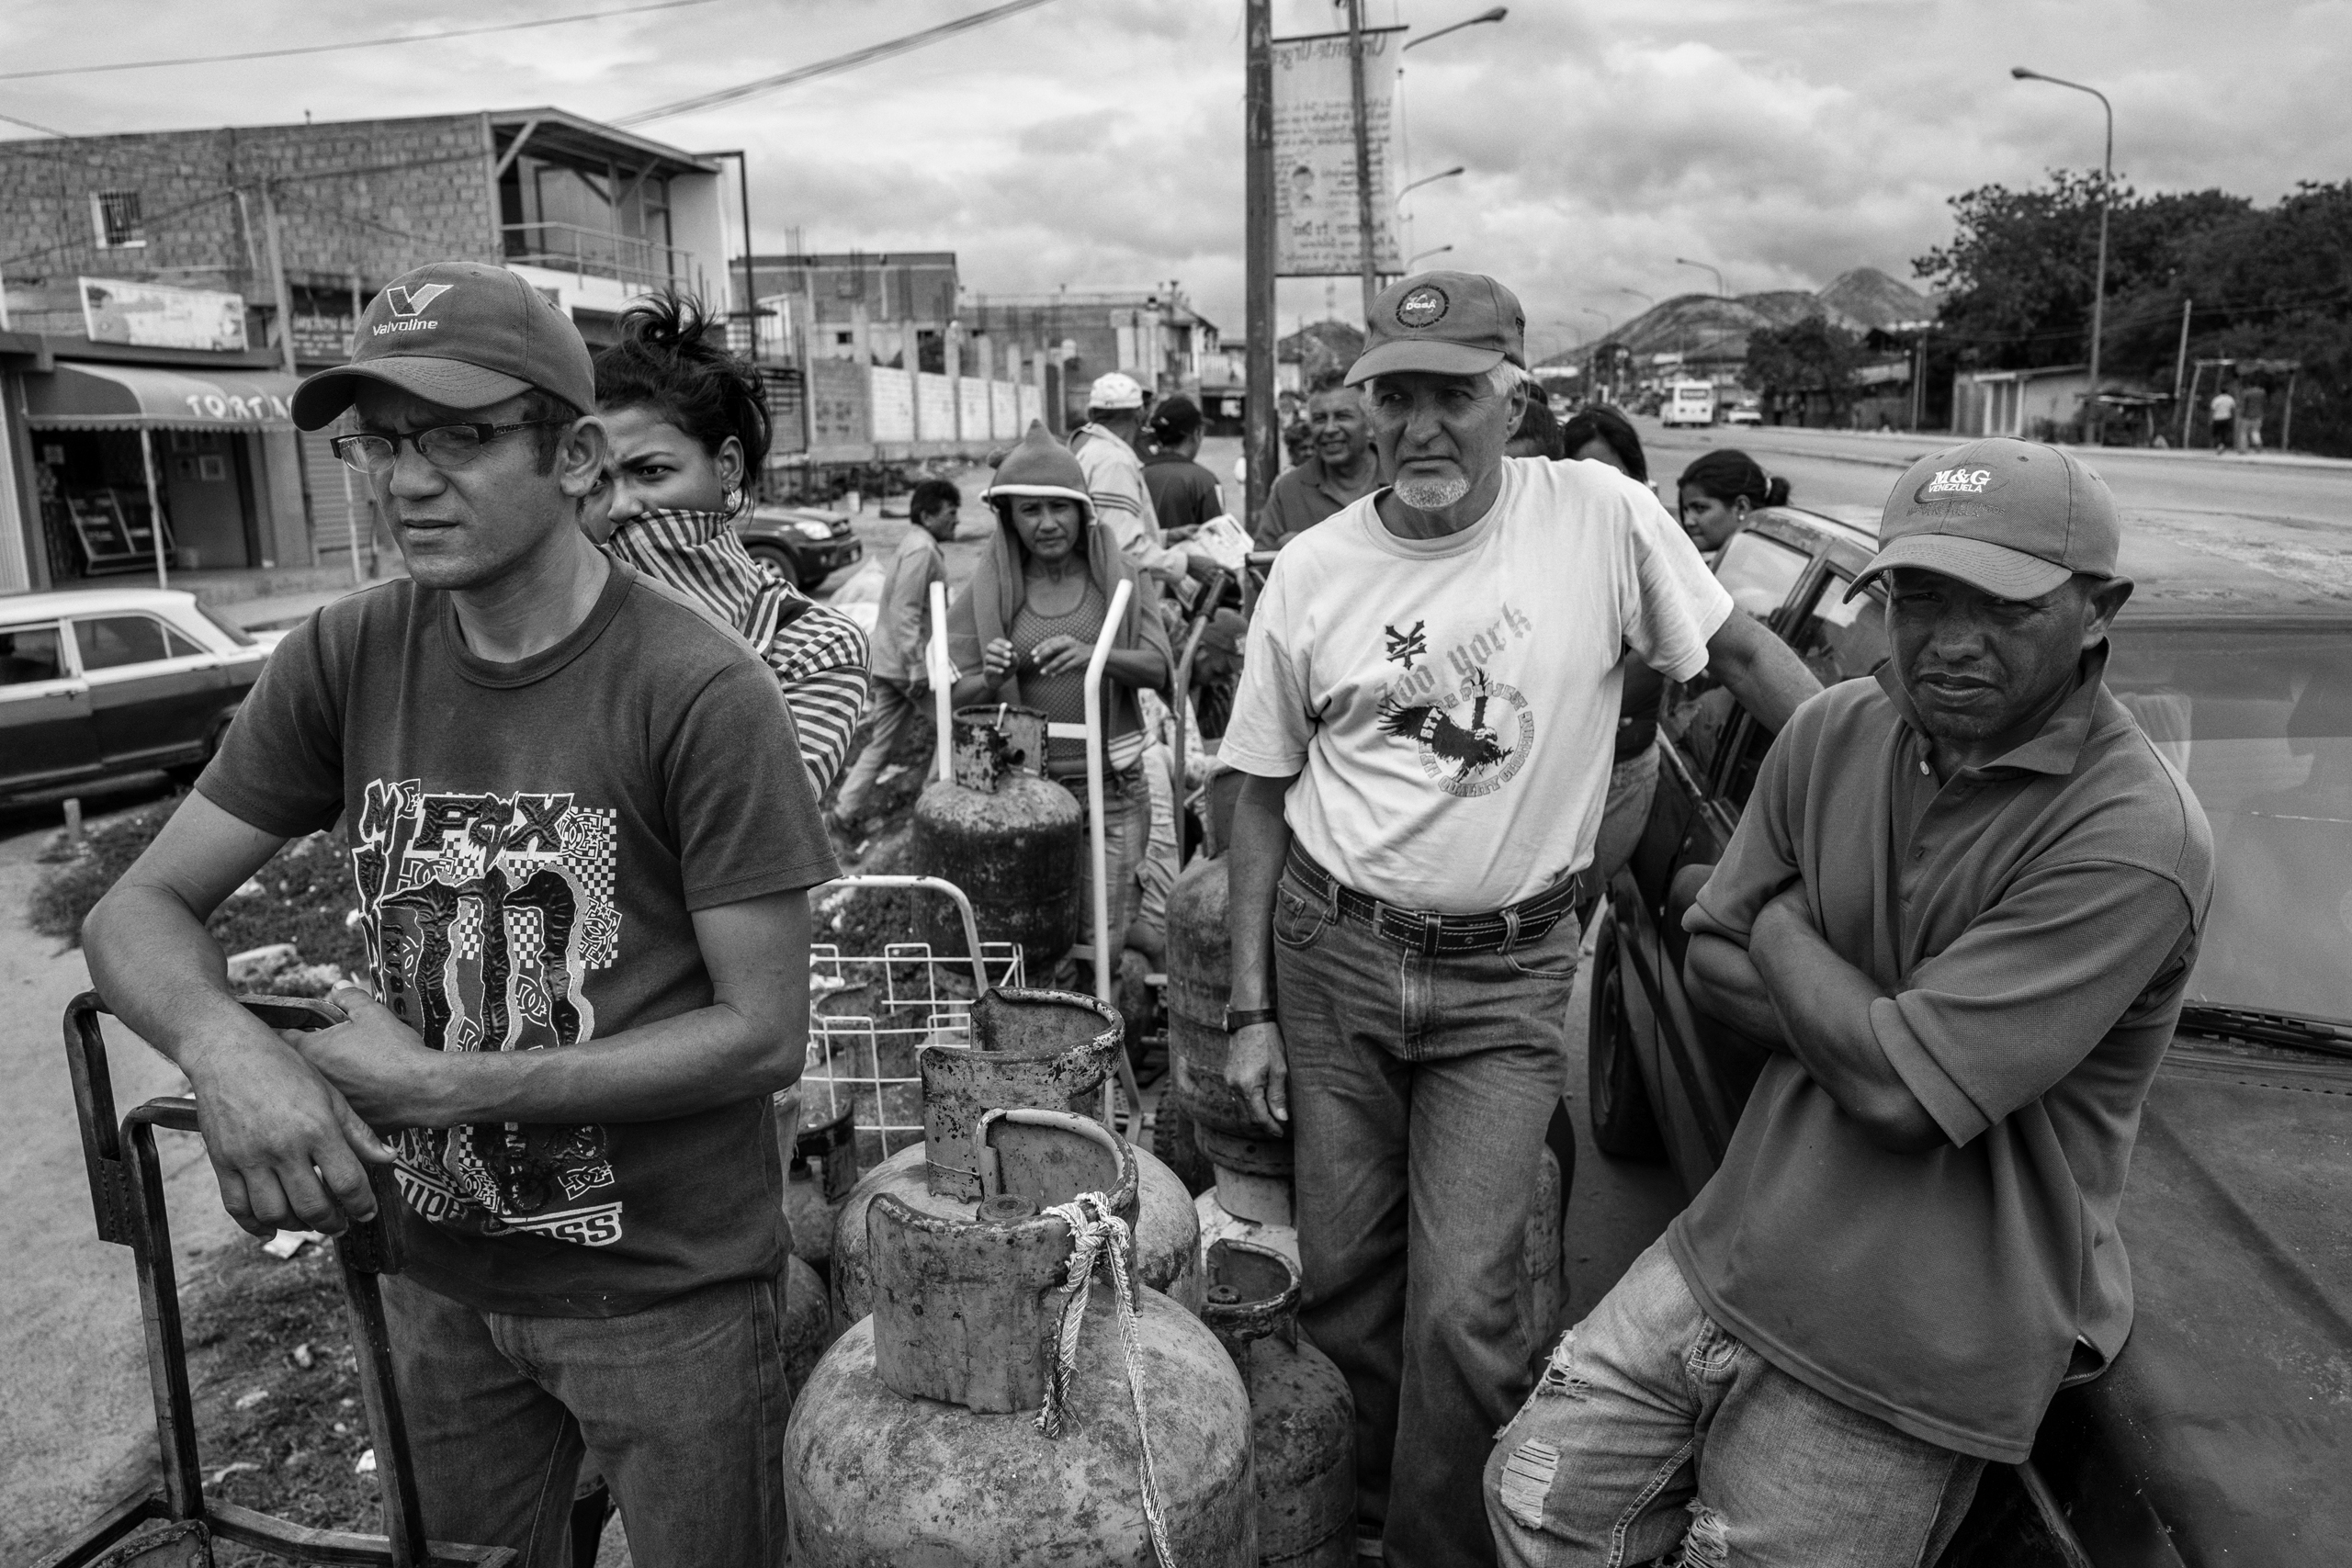 People line up for gas, which is needed for cooking and hot water. Because of severe shortages in the country, tension and discontent among the civilian population has grown resulting in outbreaks of violence and looting throughout the country, Barquisimeto, Venezuela,   June 2016.